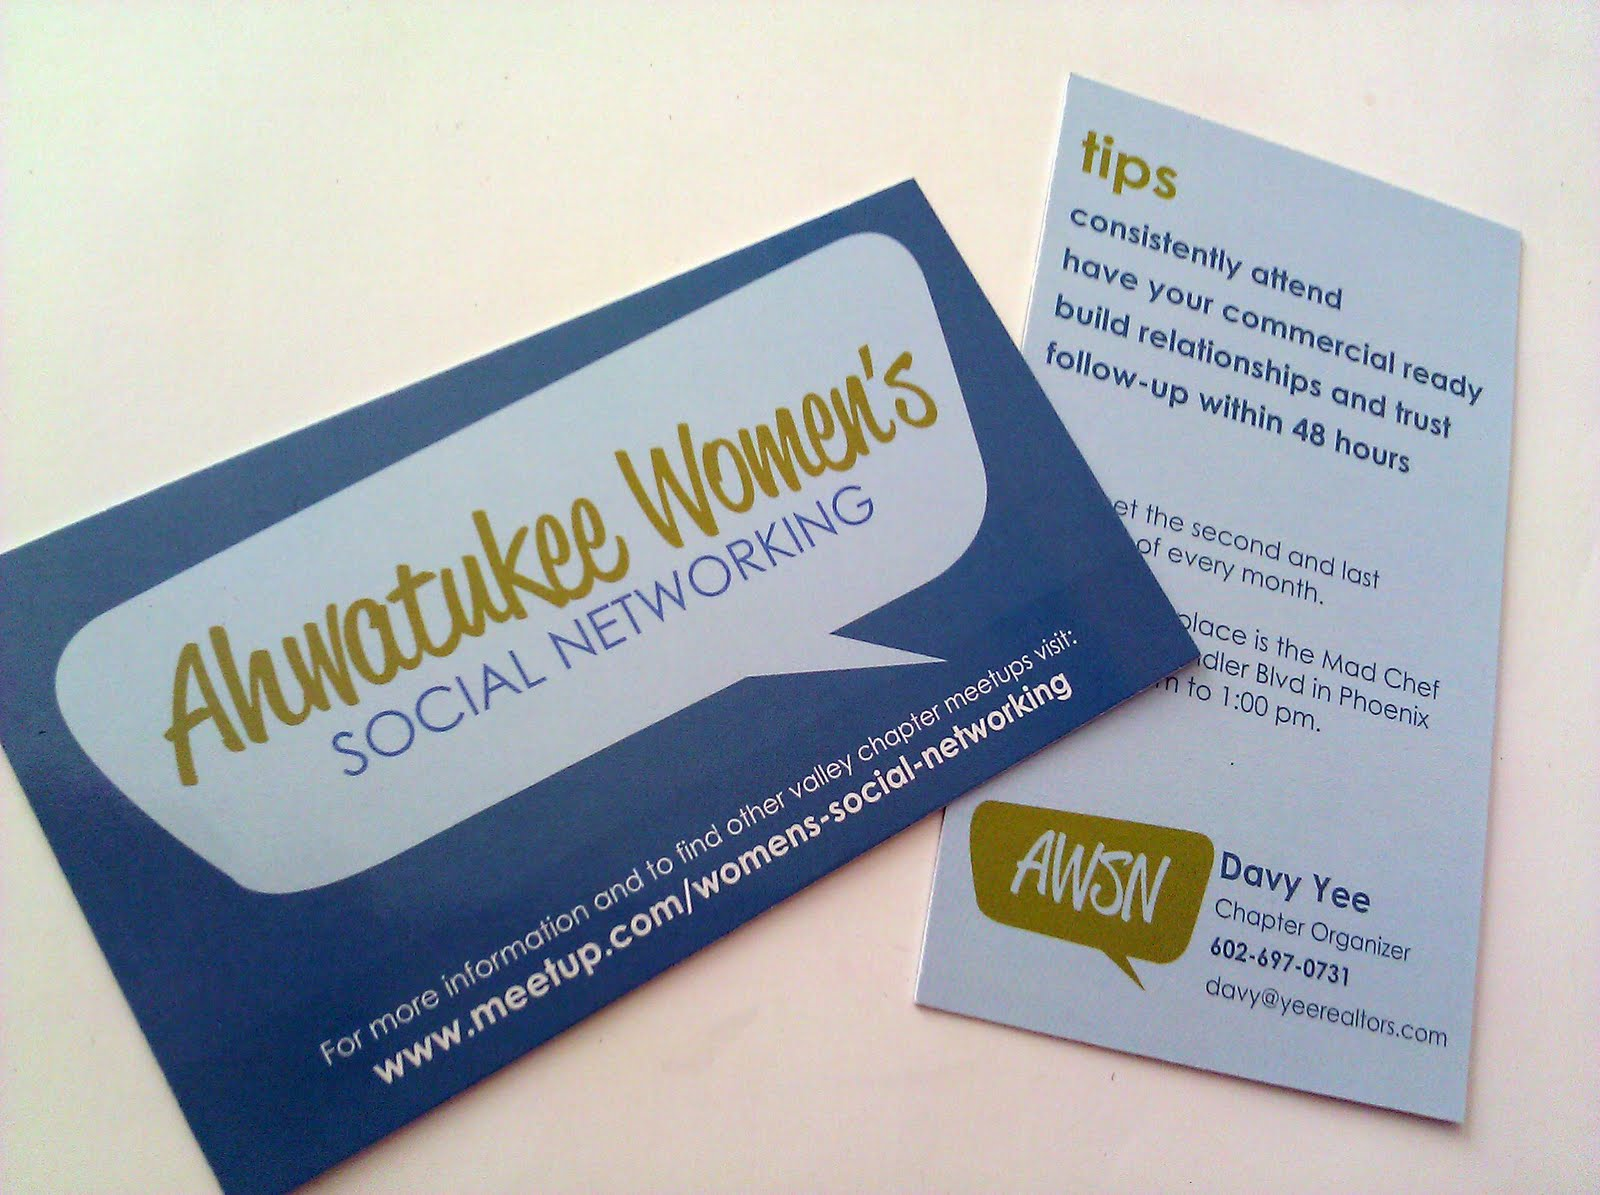 absolute edge design ahwatukee women s social networking business cards looove these i worked the wonderful davy yee the chapter organizer to come up a card to